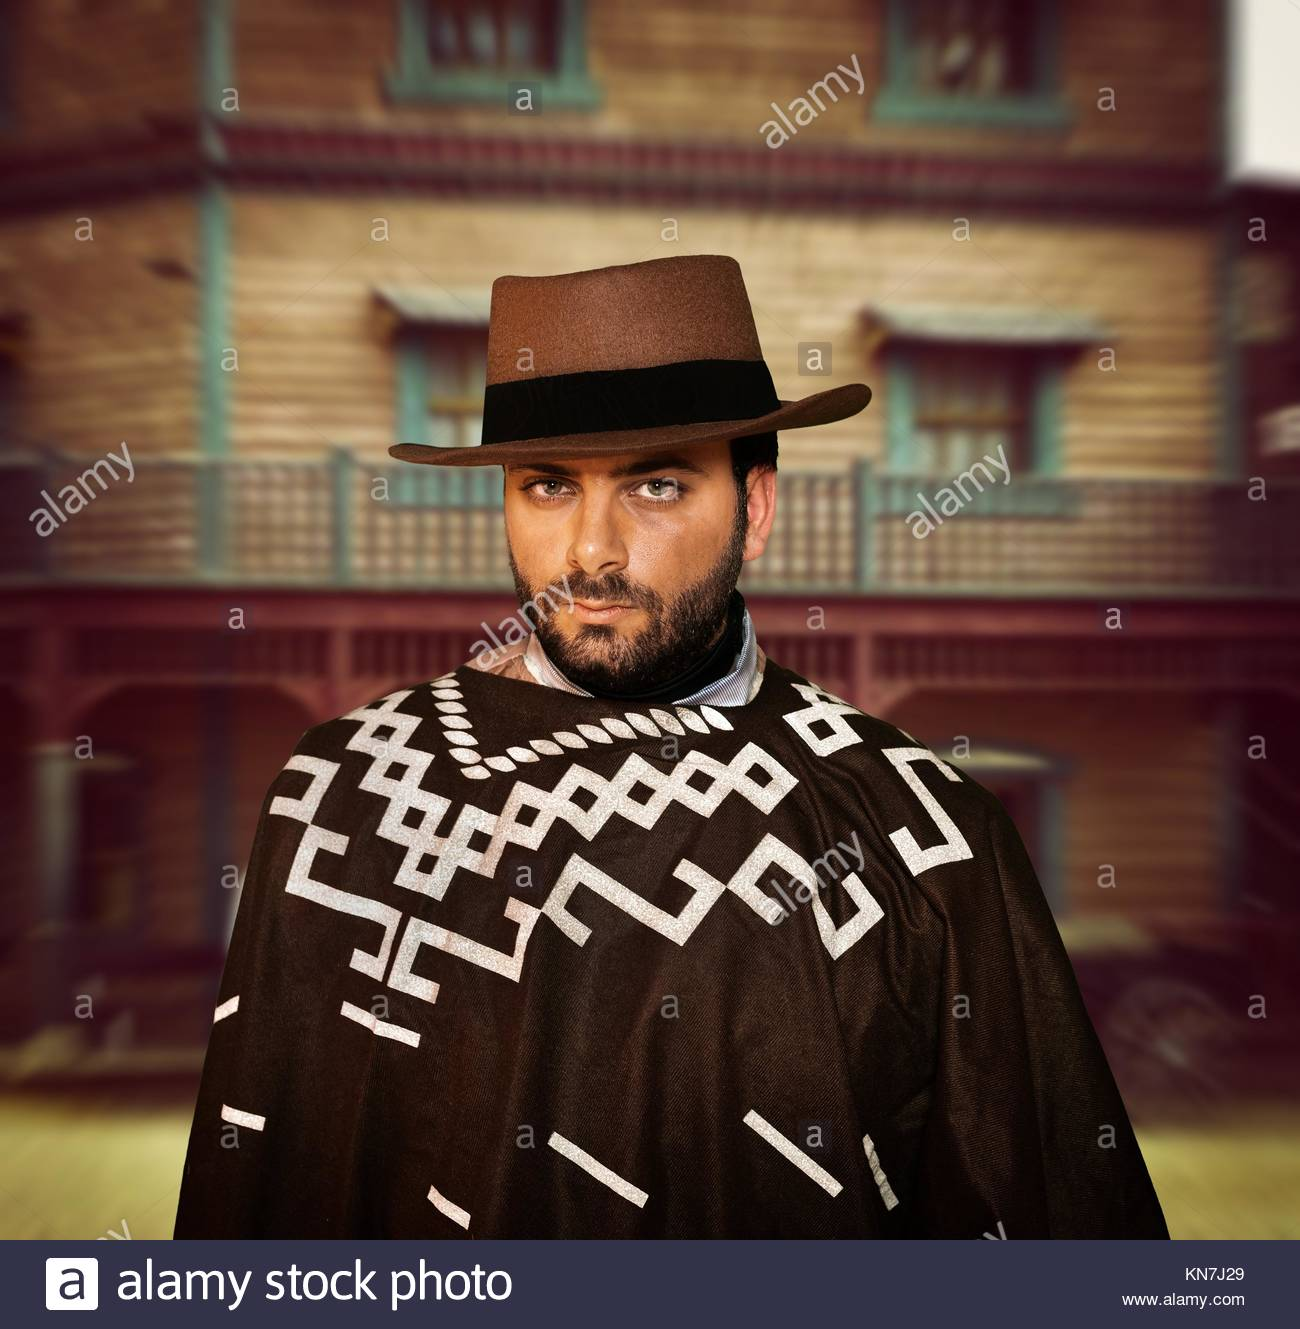 Town & Country Ford >> Wild Wild West Movie Stock Photos & Wild Wild West Movie Stock Images - Alamy